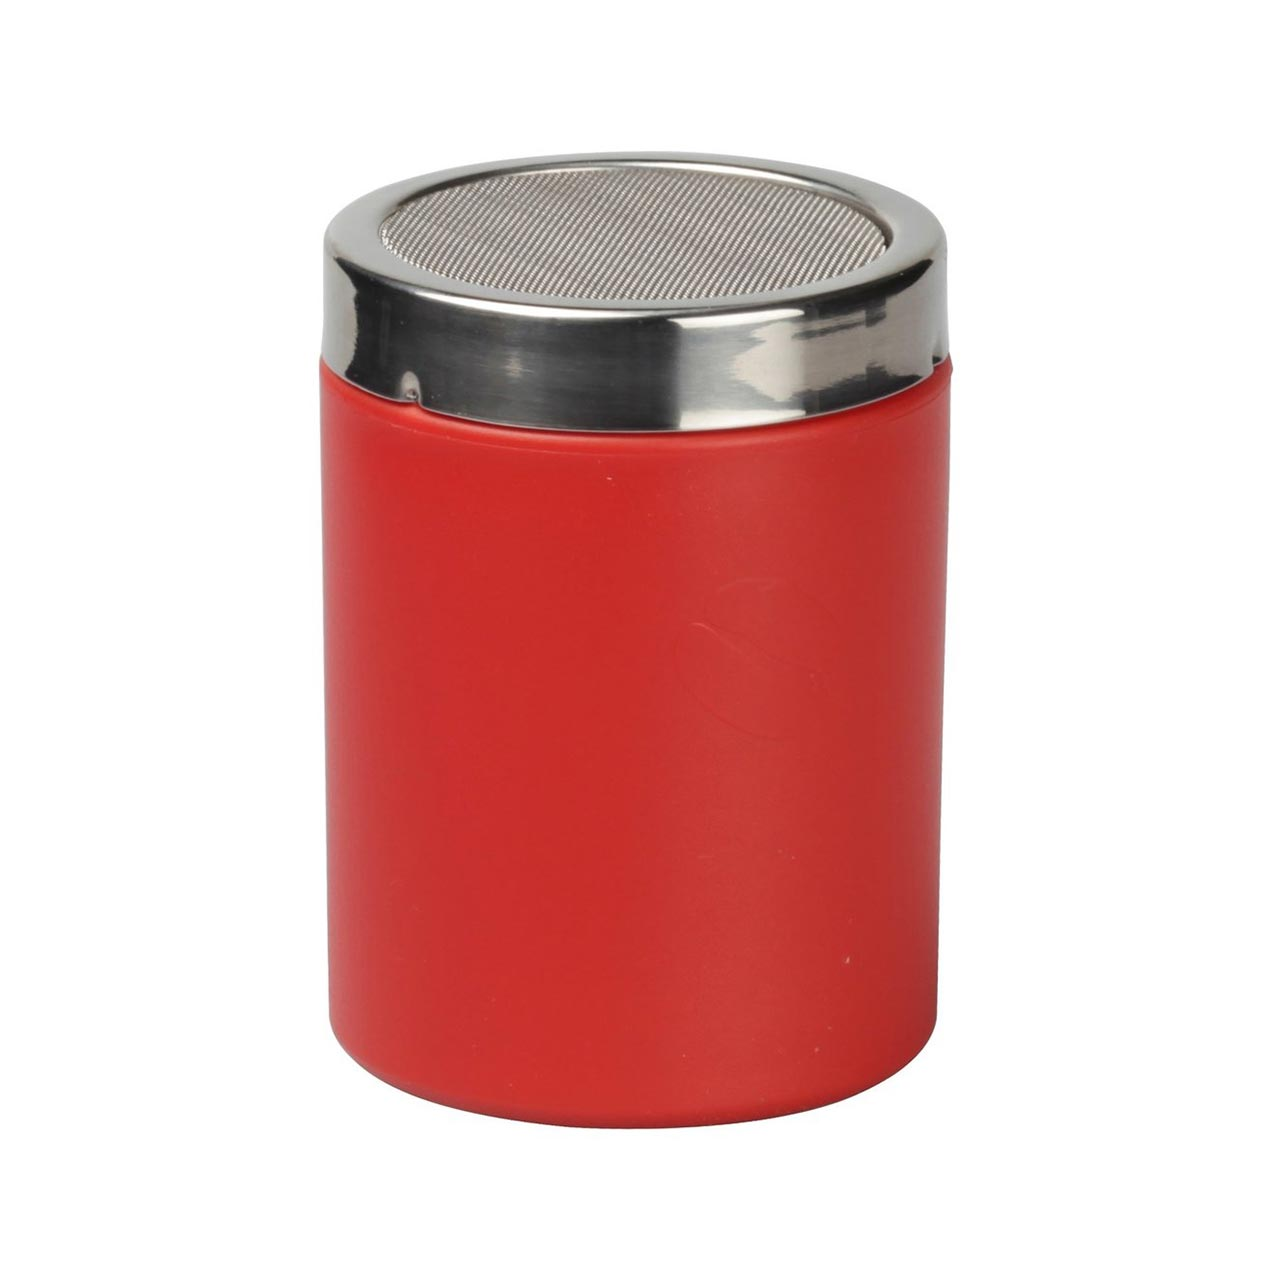 Red cocoa shaker